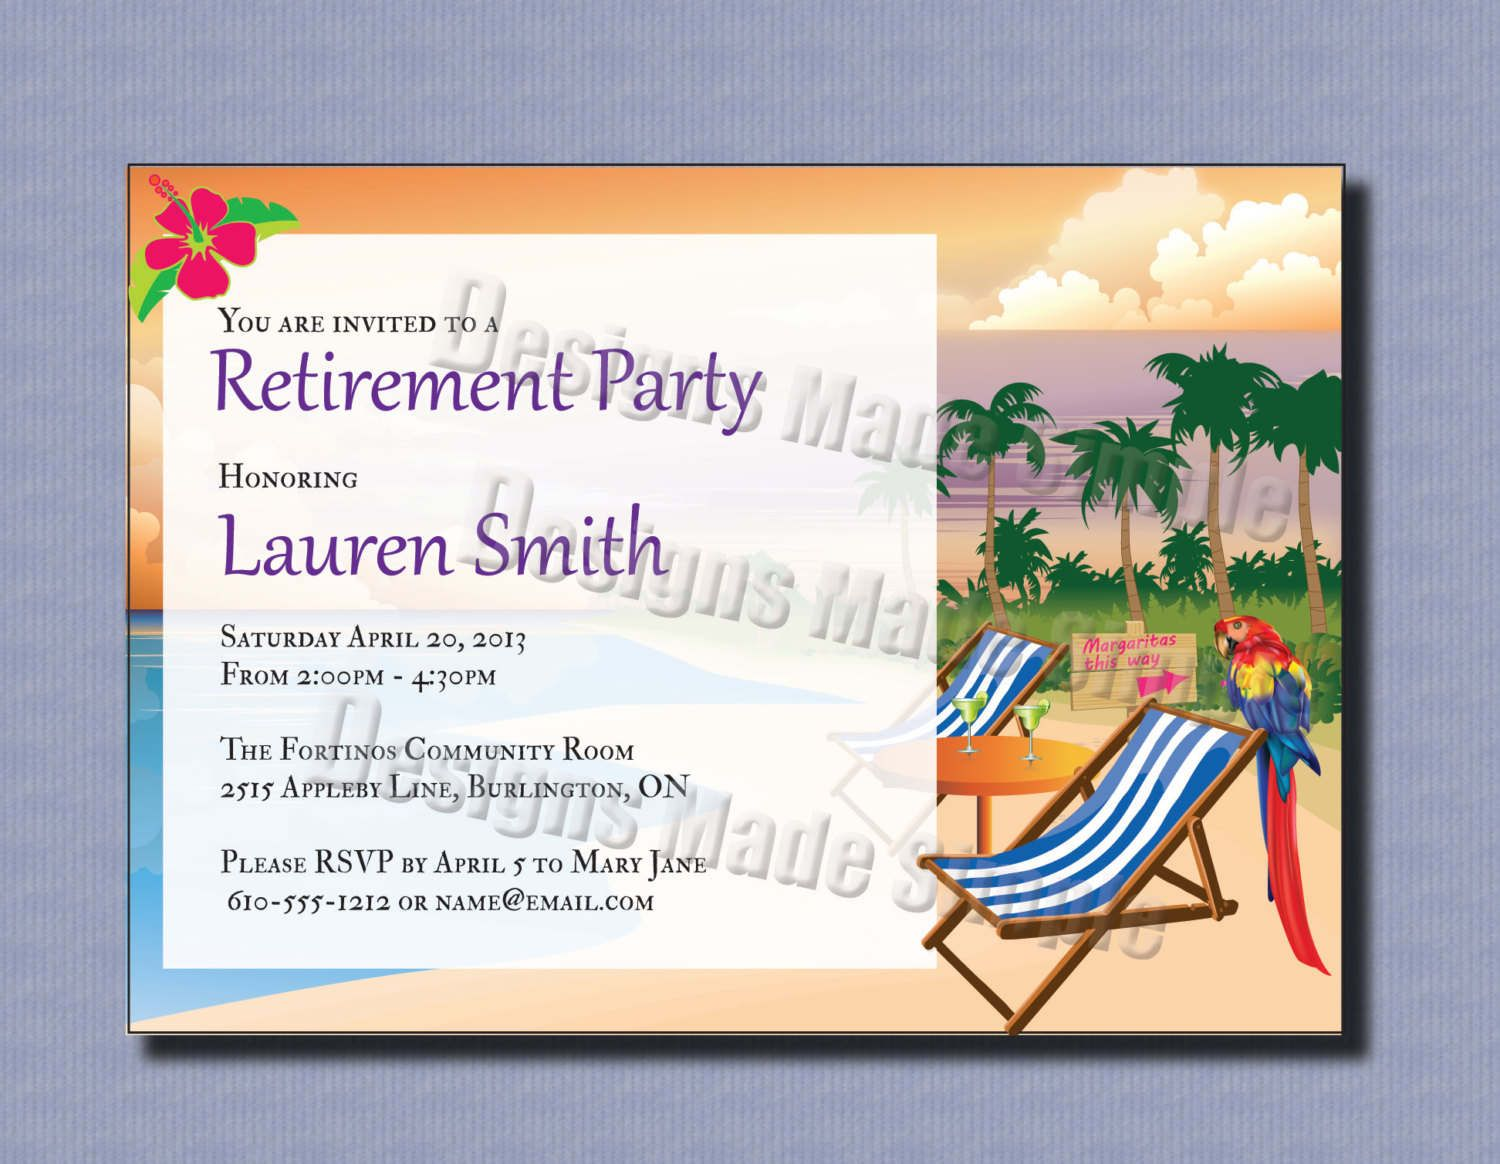 Sample retirement invitations burge. Bjgmc-tb. Org.